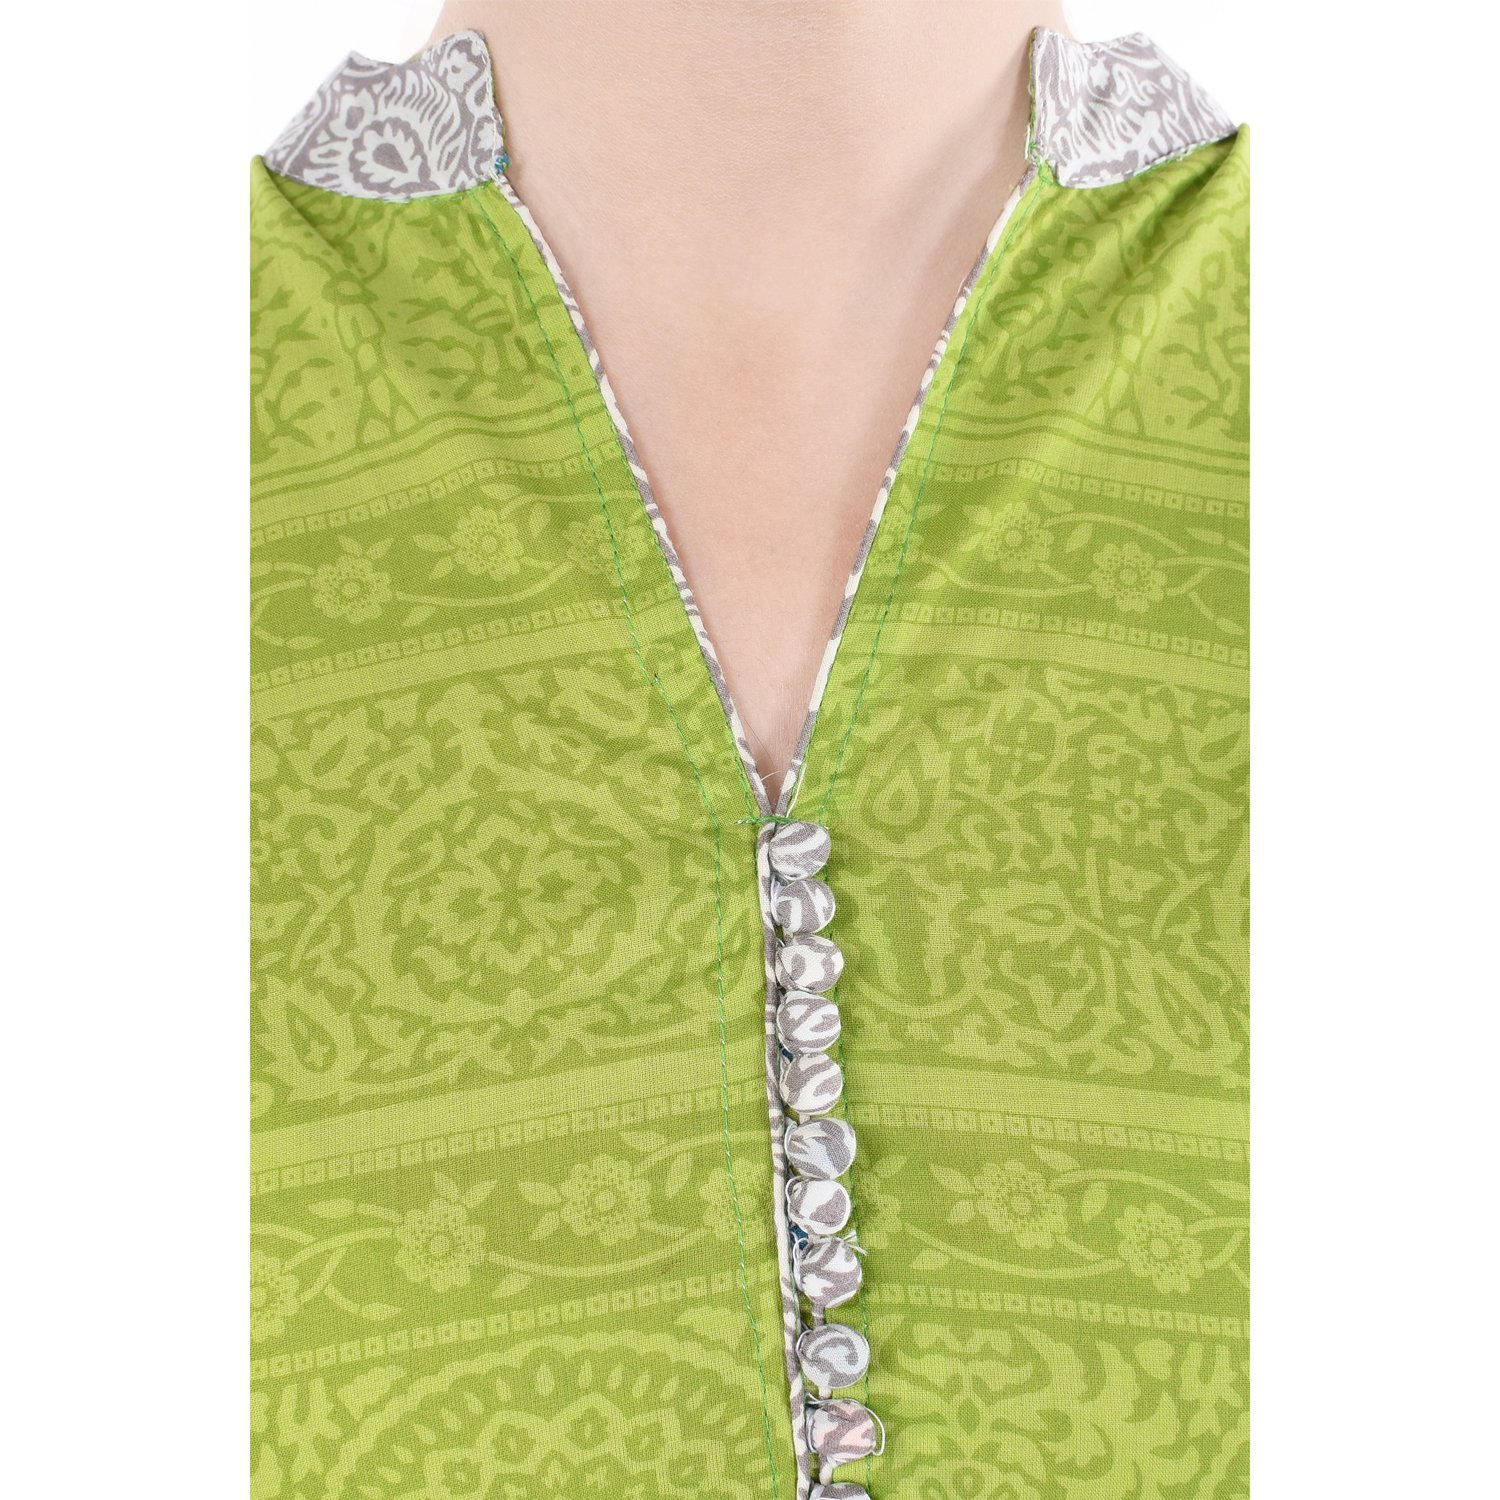 Chichi Women 3/4 Sleeve Tunic Embroidery Top Kurti Blouse (Yellow)(Women's Day Special),Medium,Fire-yellow by CHI (Image #3)